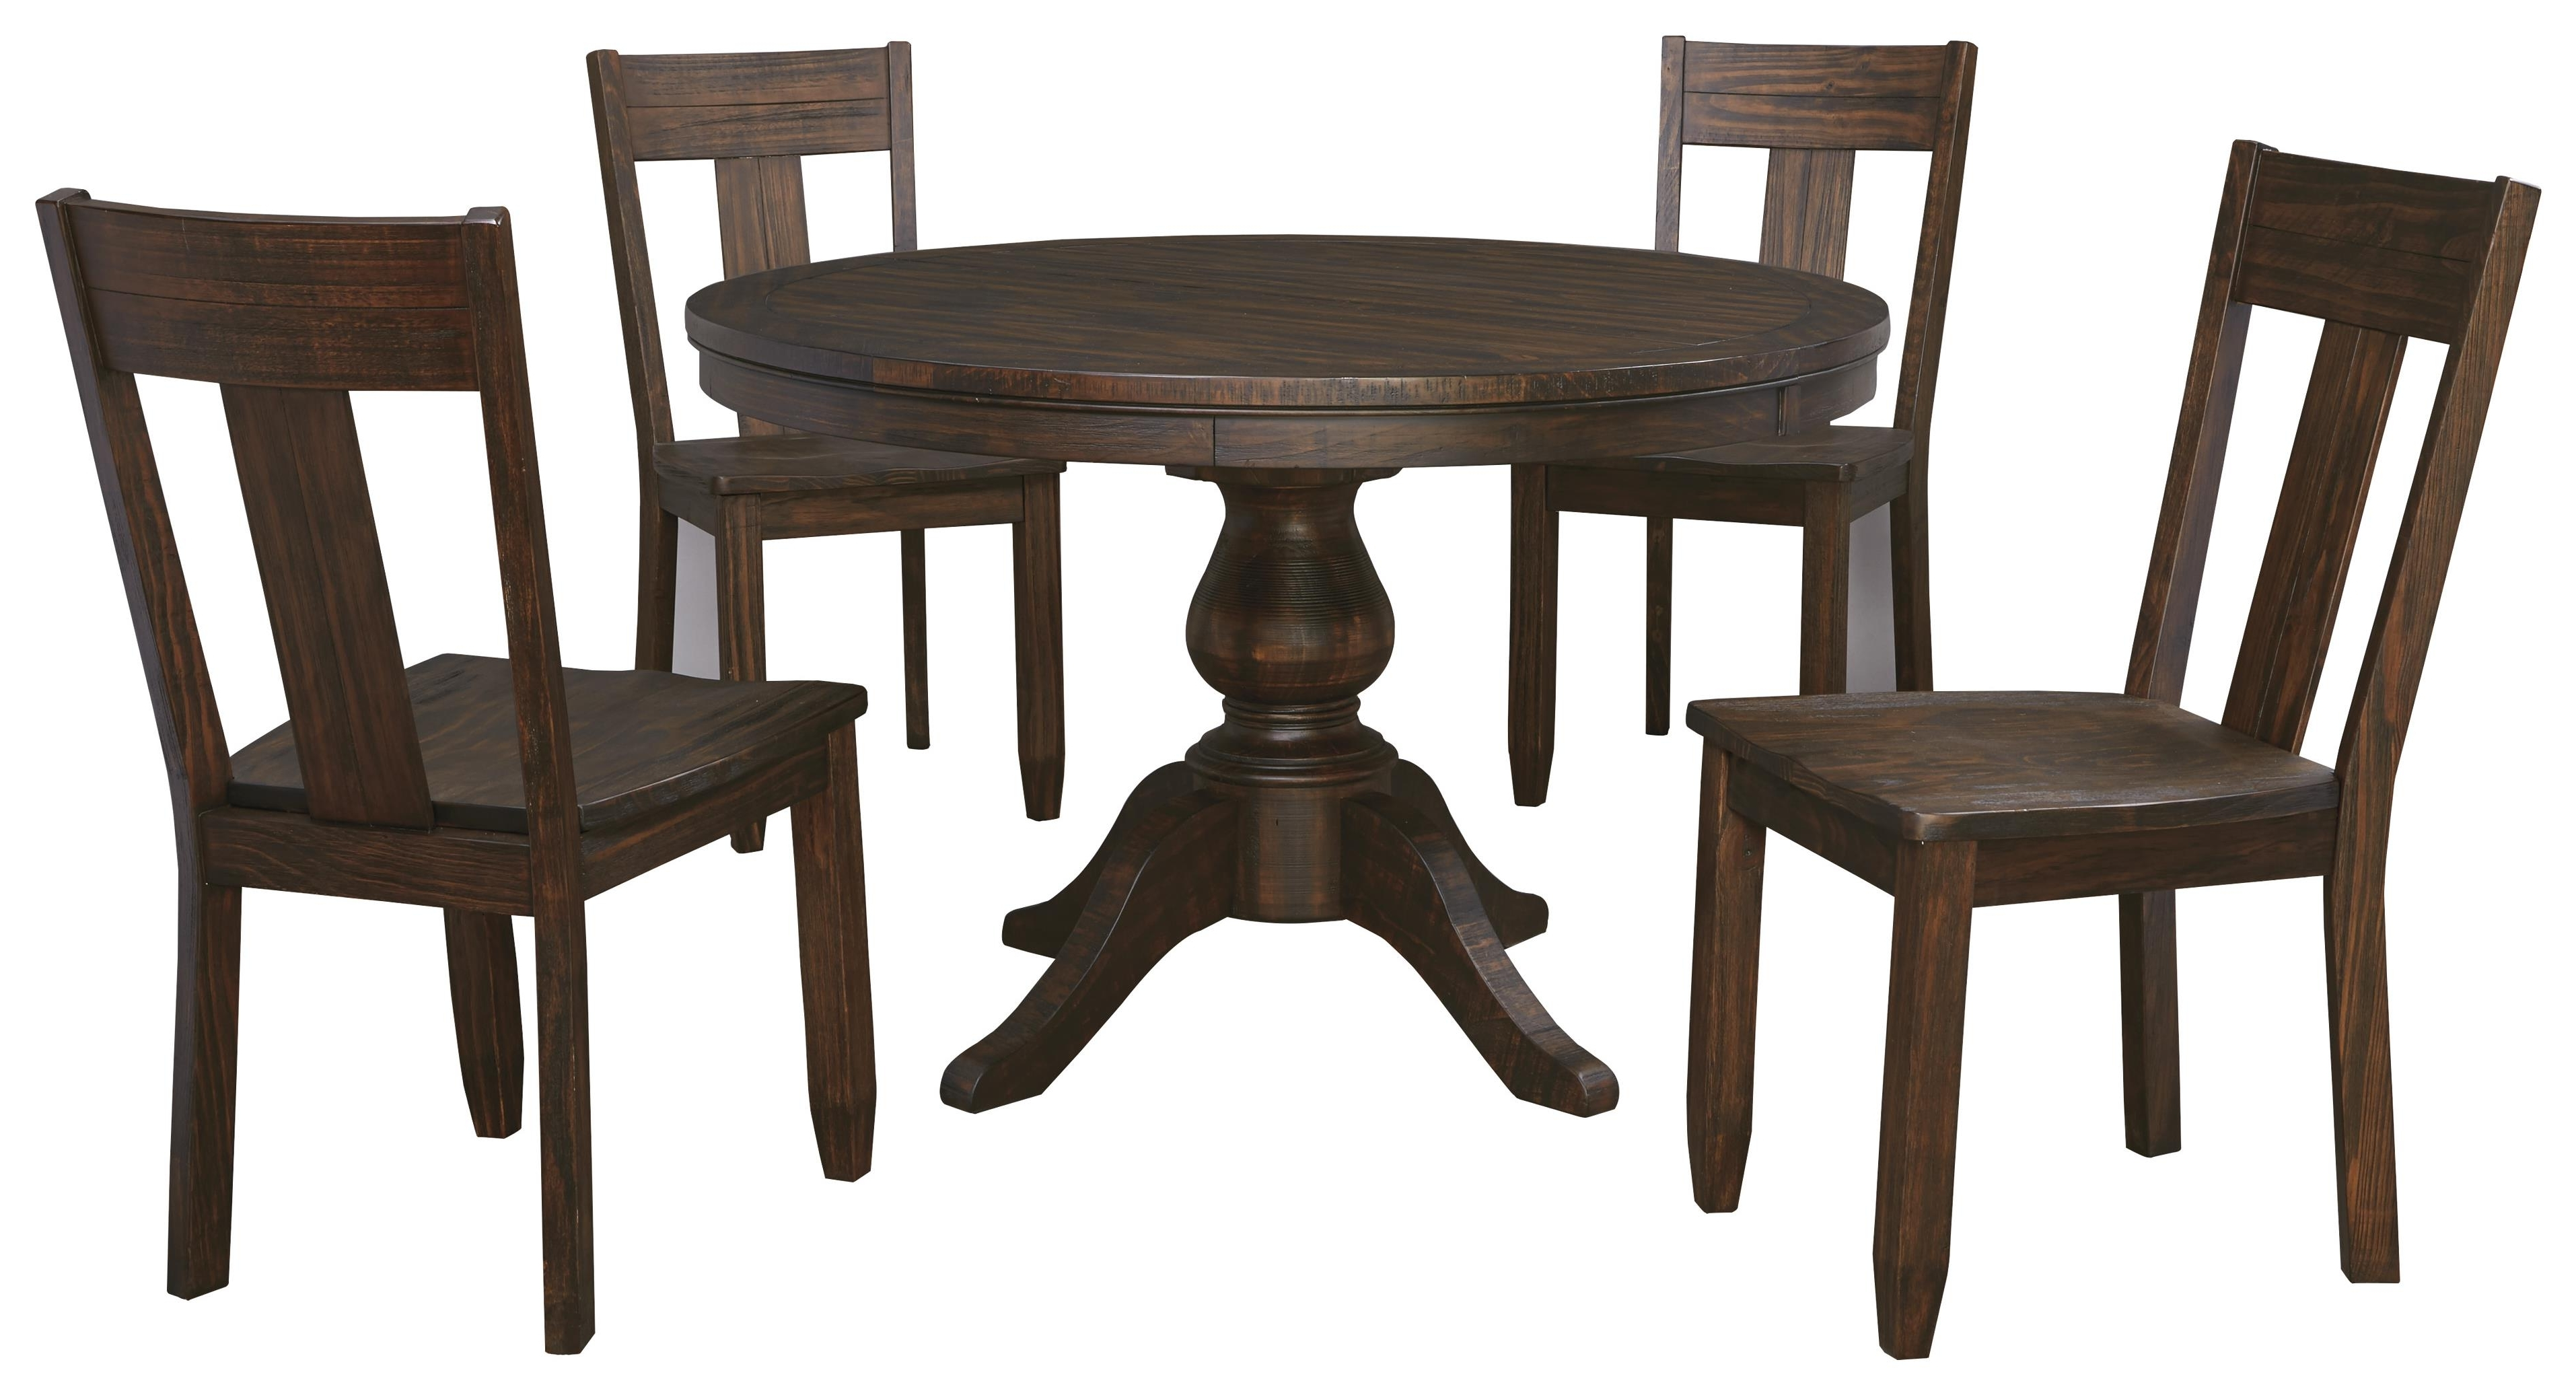 5 Piece Round Dining Table Set – Castrophotos Pertaining To Latest Macie 5 Piece Round Dining Sets (View 6 of 25)